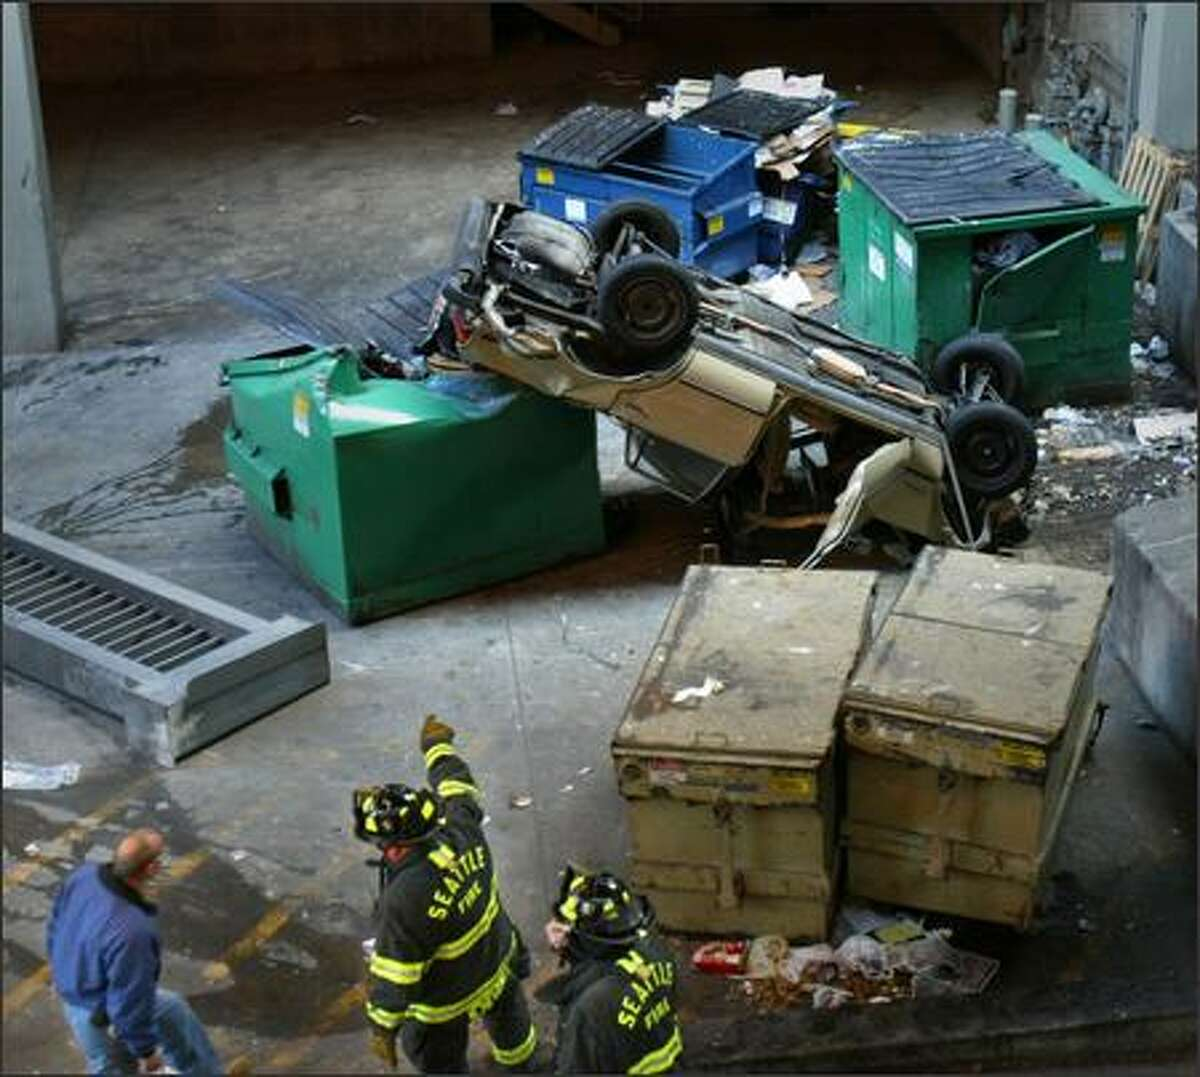 Firefighters point to an overturned car that plunged off a downtown road and onto a berm and a garbage bin Monday.